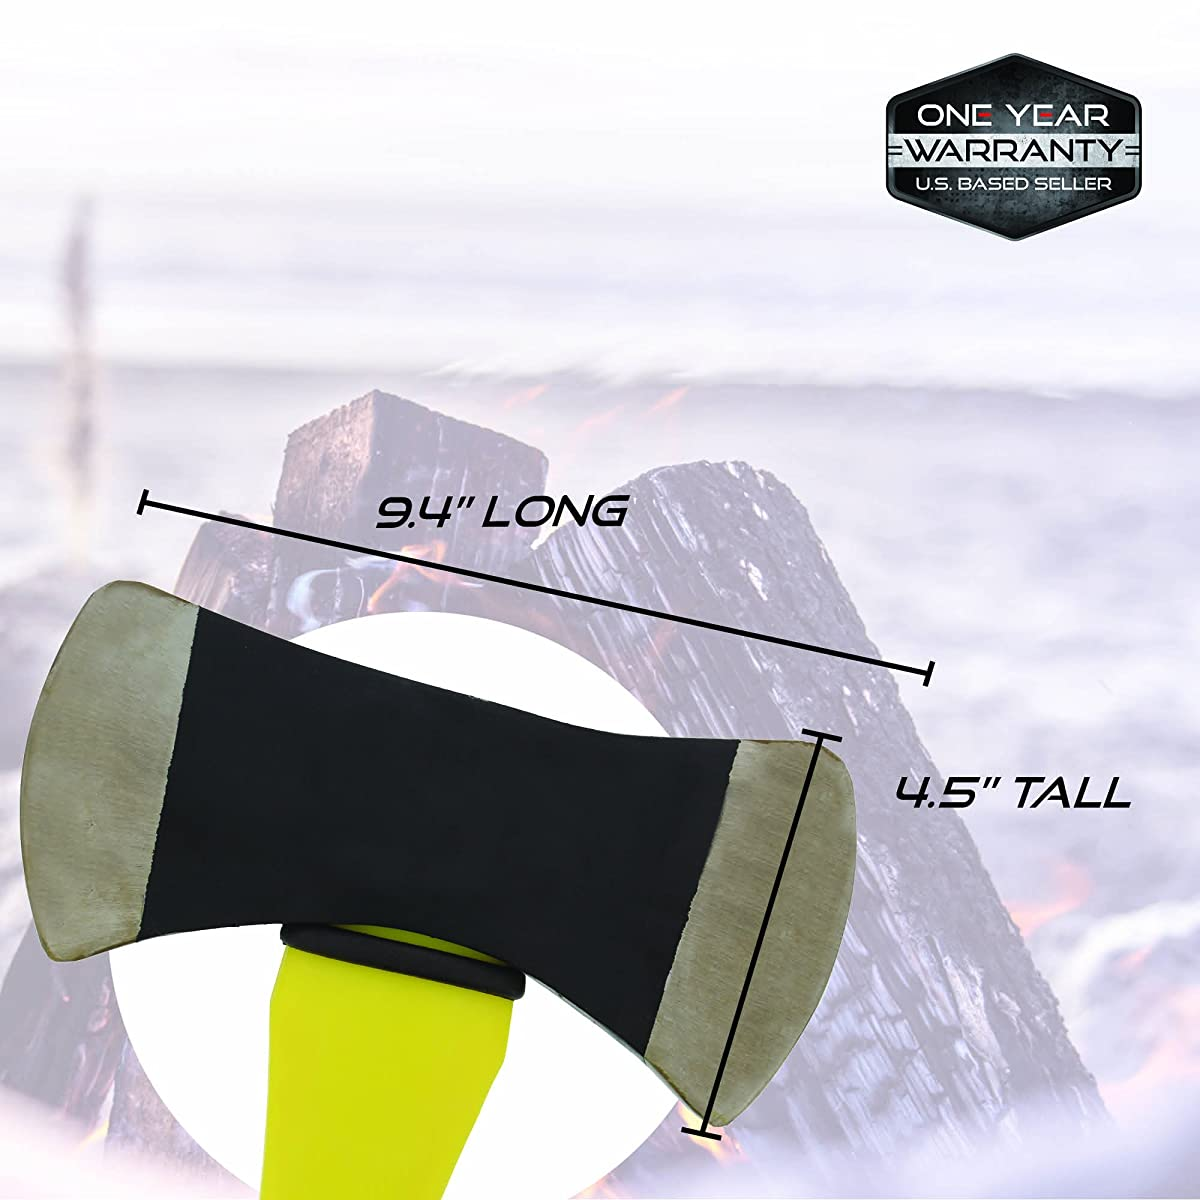 Double Sided Head 3.5lb Pound Axe & Handle – Michigan Firefighter Ax Camping Splitting, Felling, Chopping, Cutting Wood